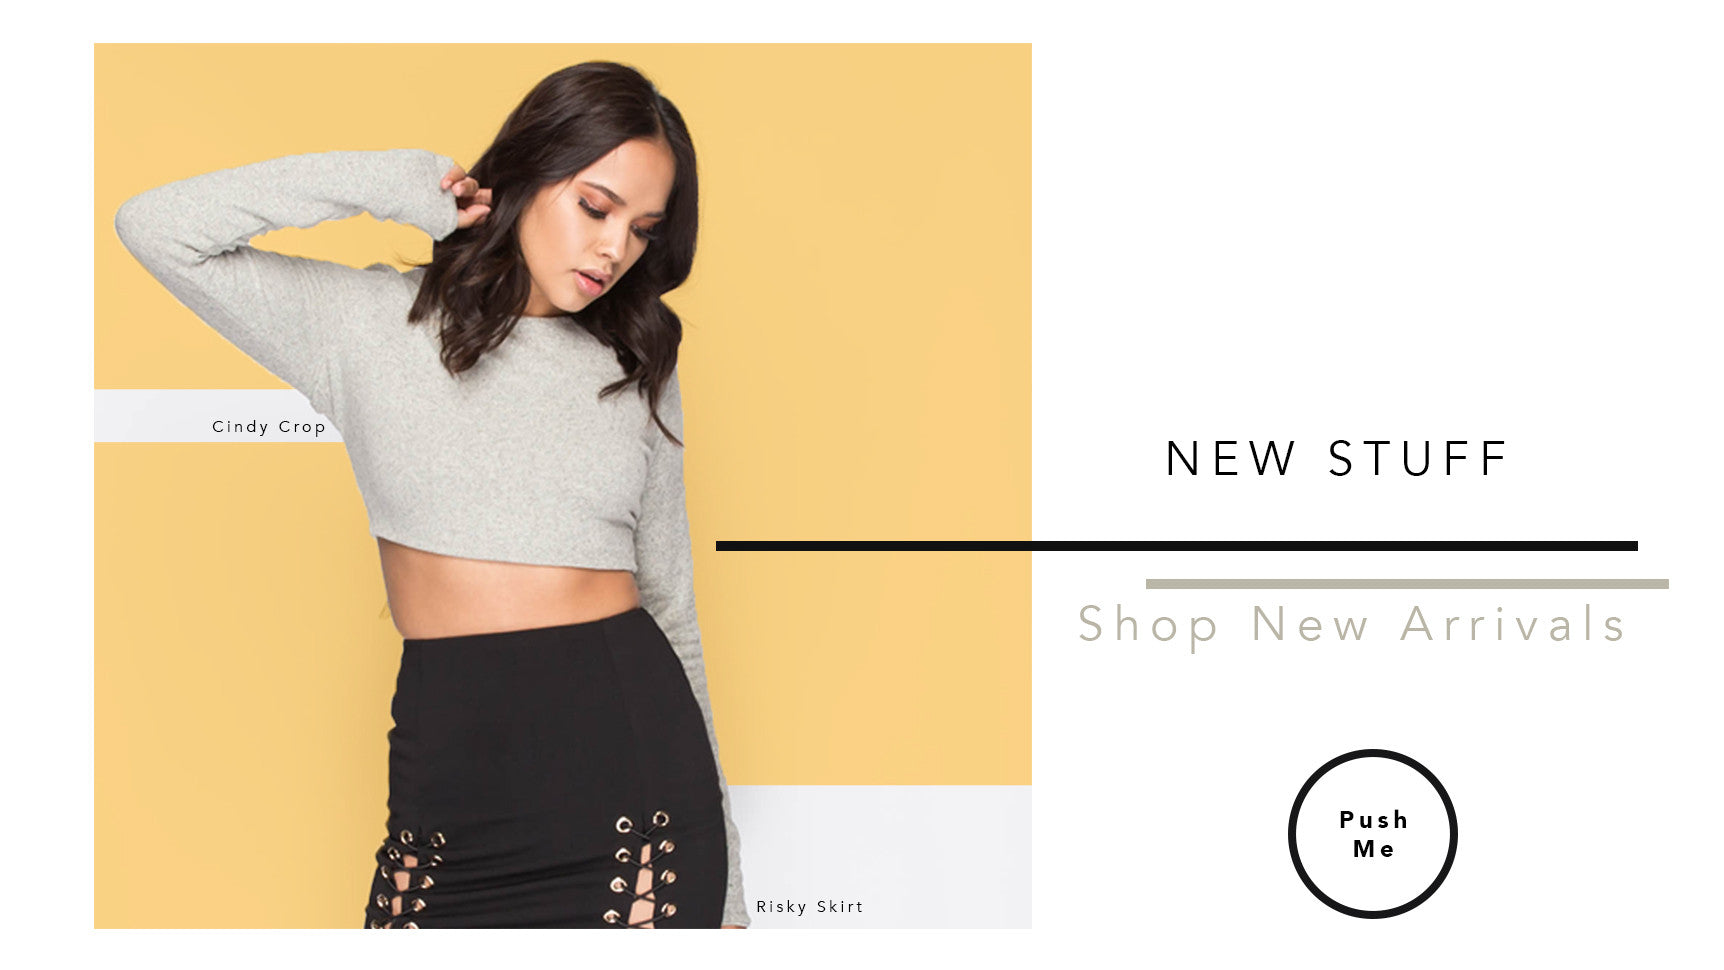 http://www.shoppingbare.com/collections/whats-new